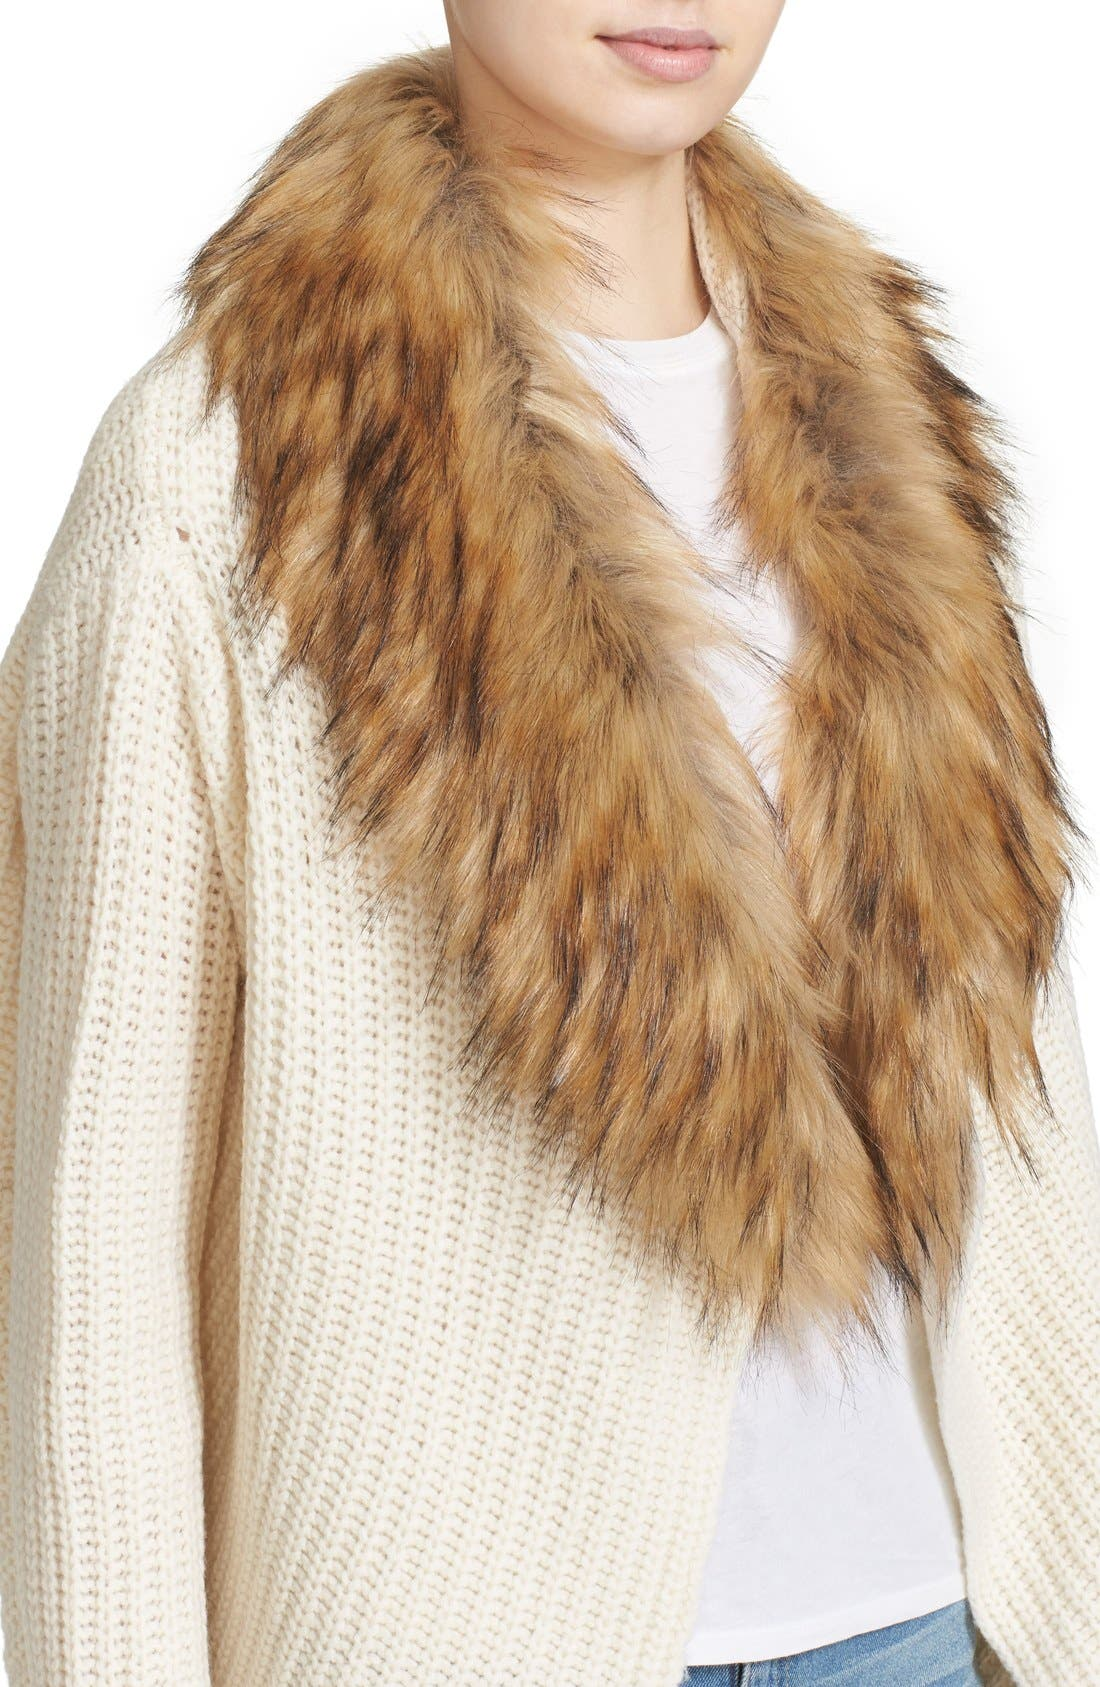 'Helma' Wool & Yak Cardigan with Faux Fur Collar,                             Alternate thumbnail 2, color,                             120